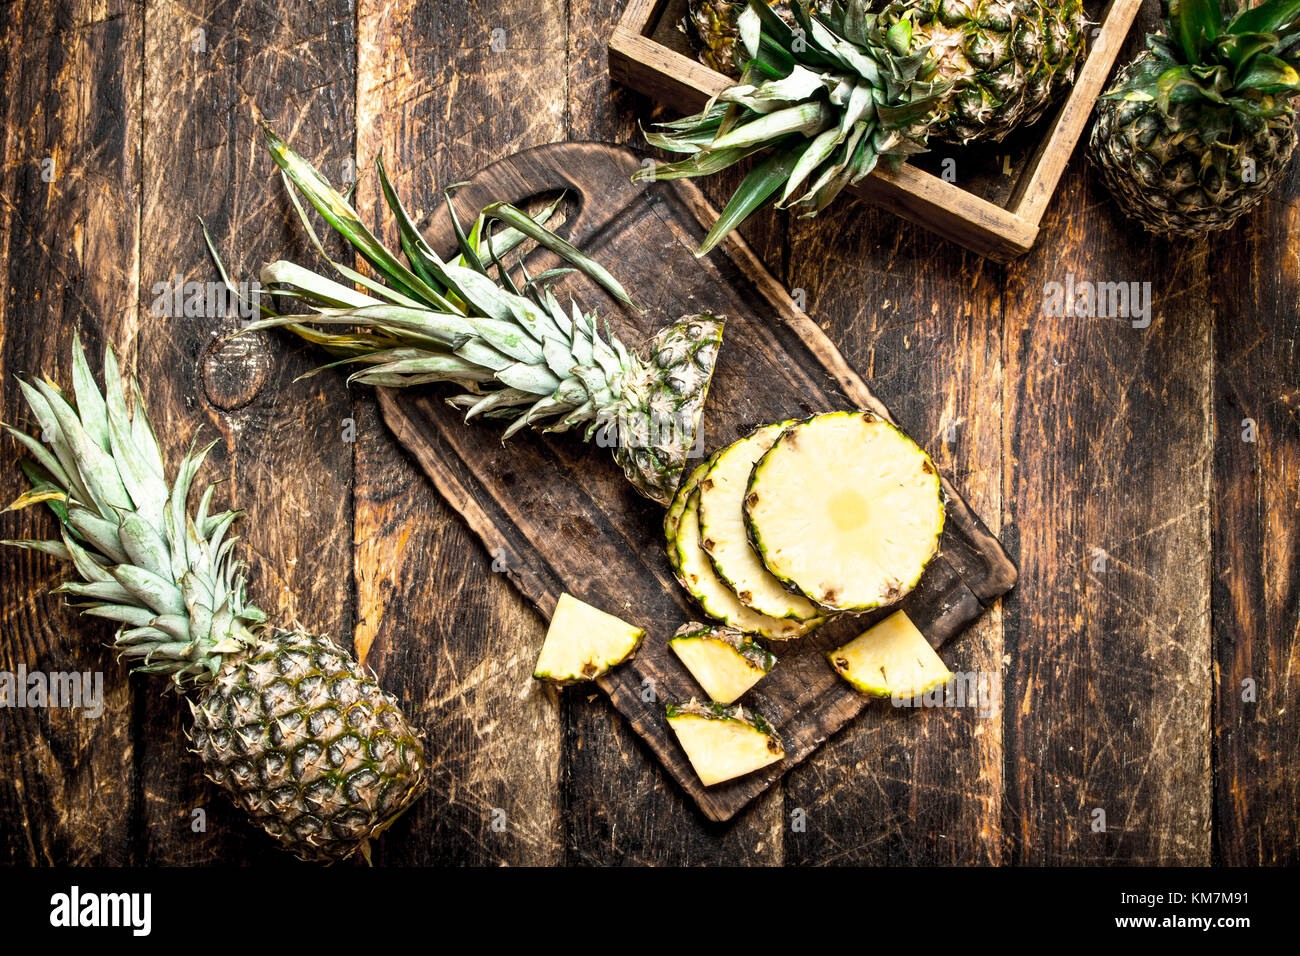 Sliced fresh pineapple. On the wooden background. - Stock Image